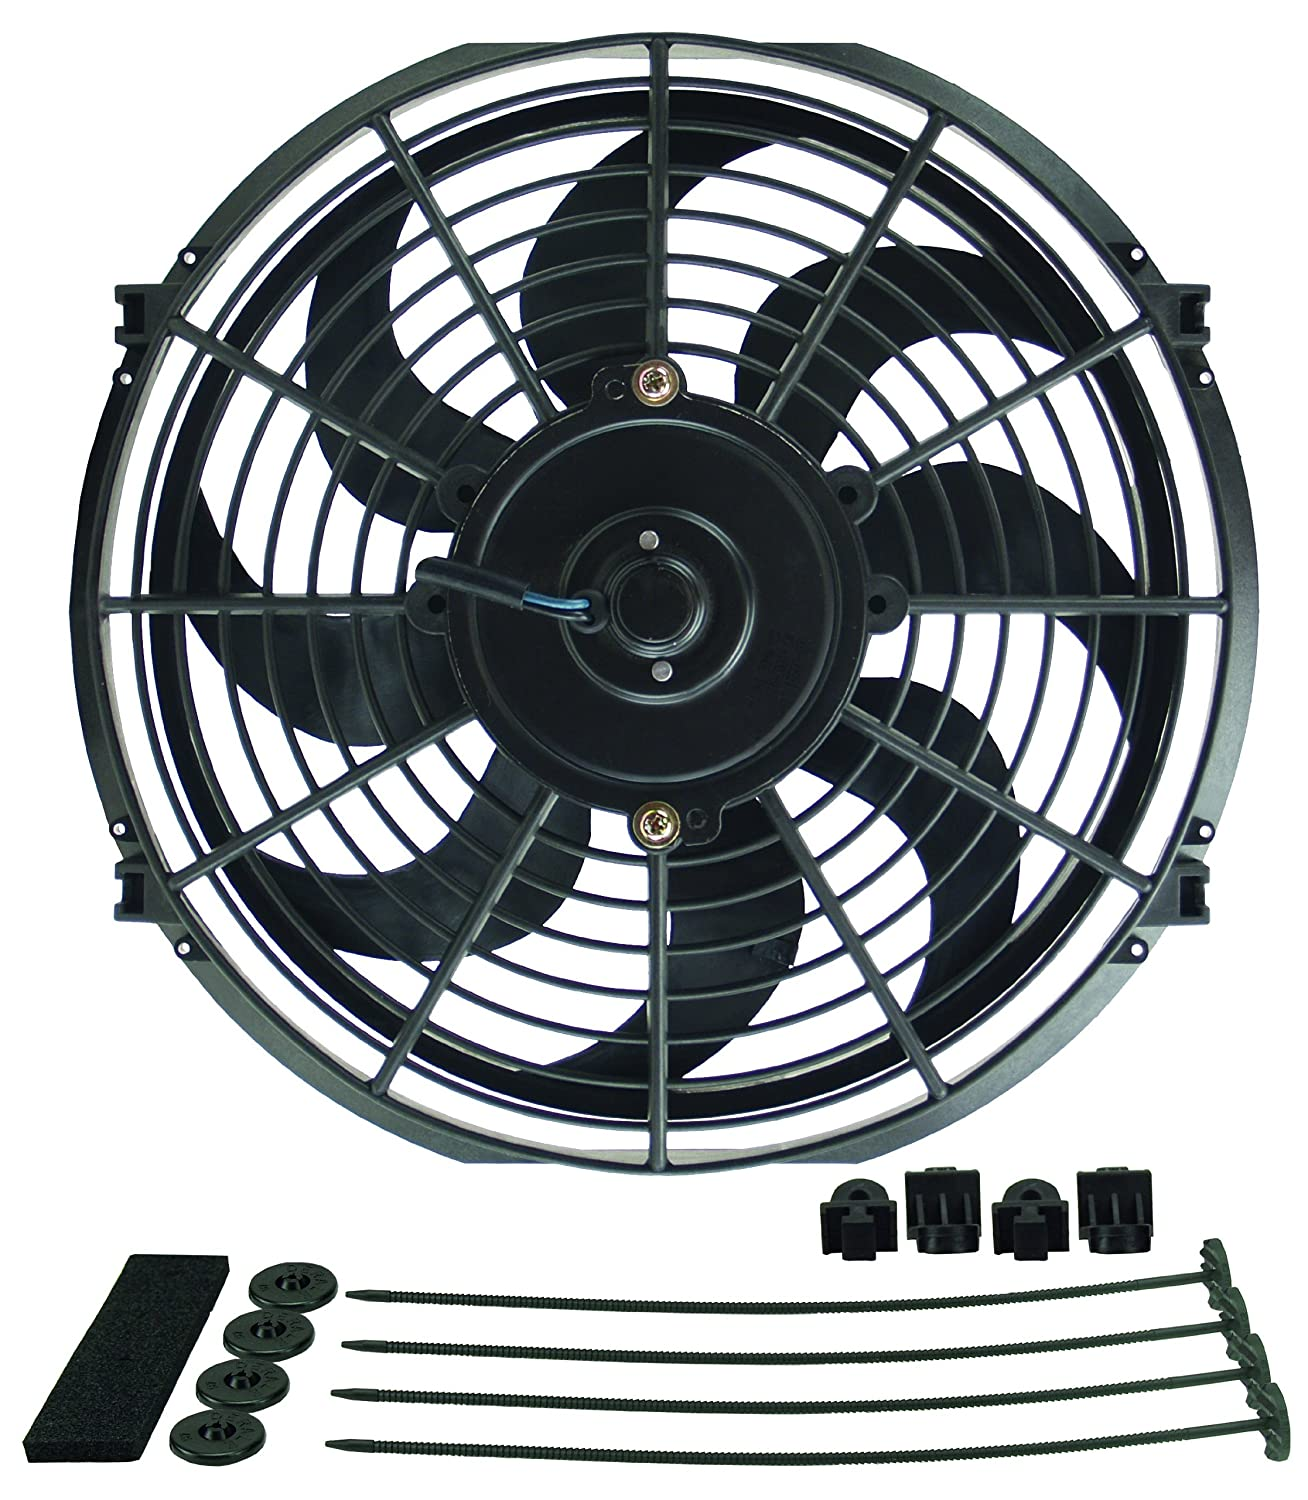 Fans & Parts Derale 18912 12 Dyno-Cool High Performance Electric ...